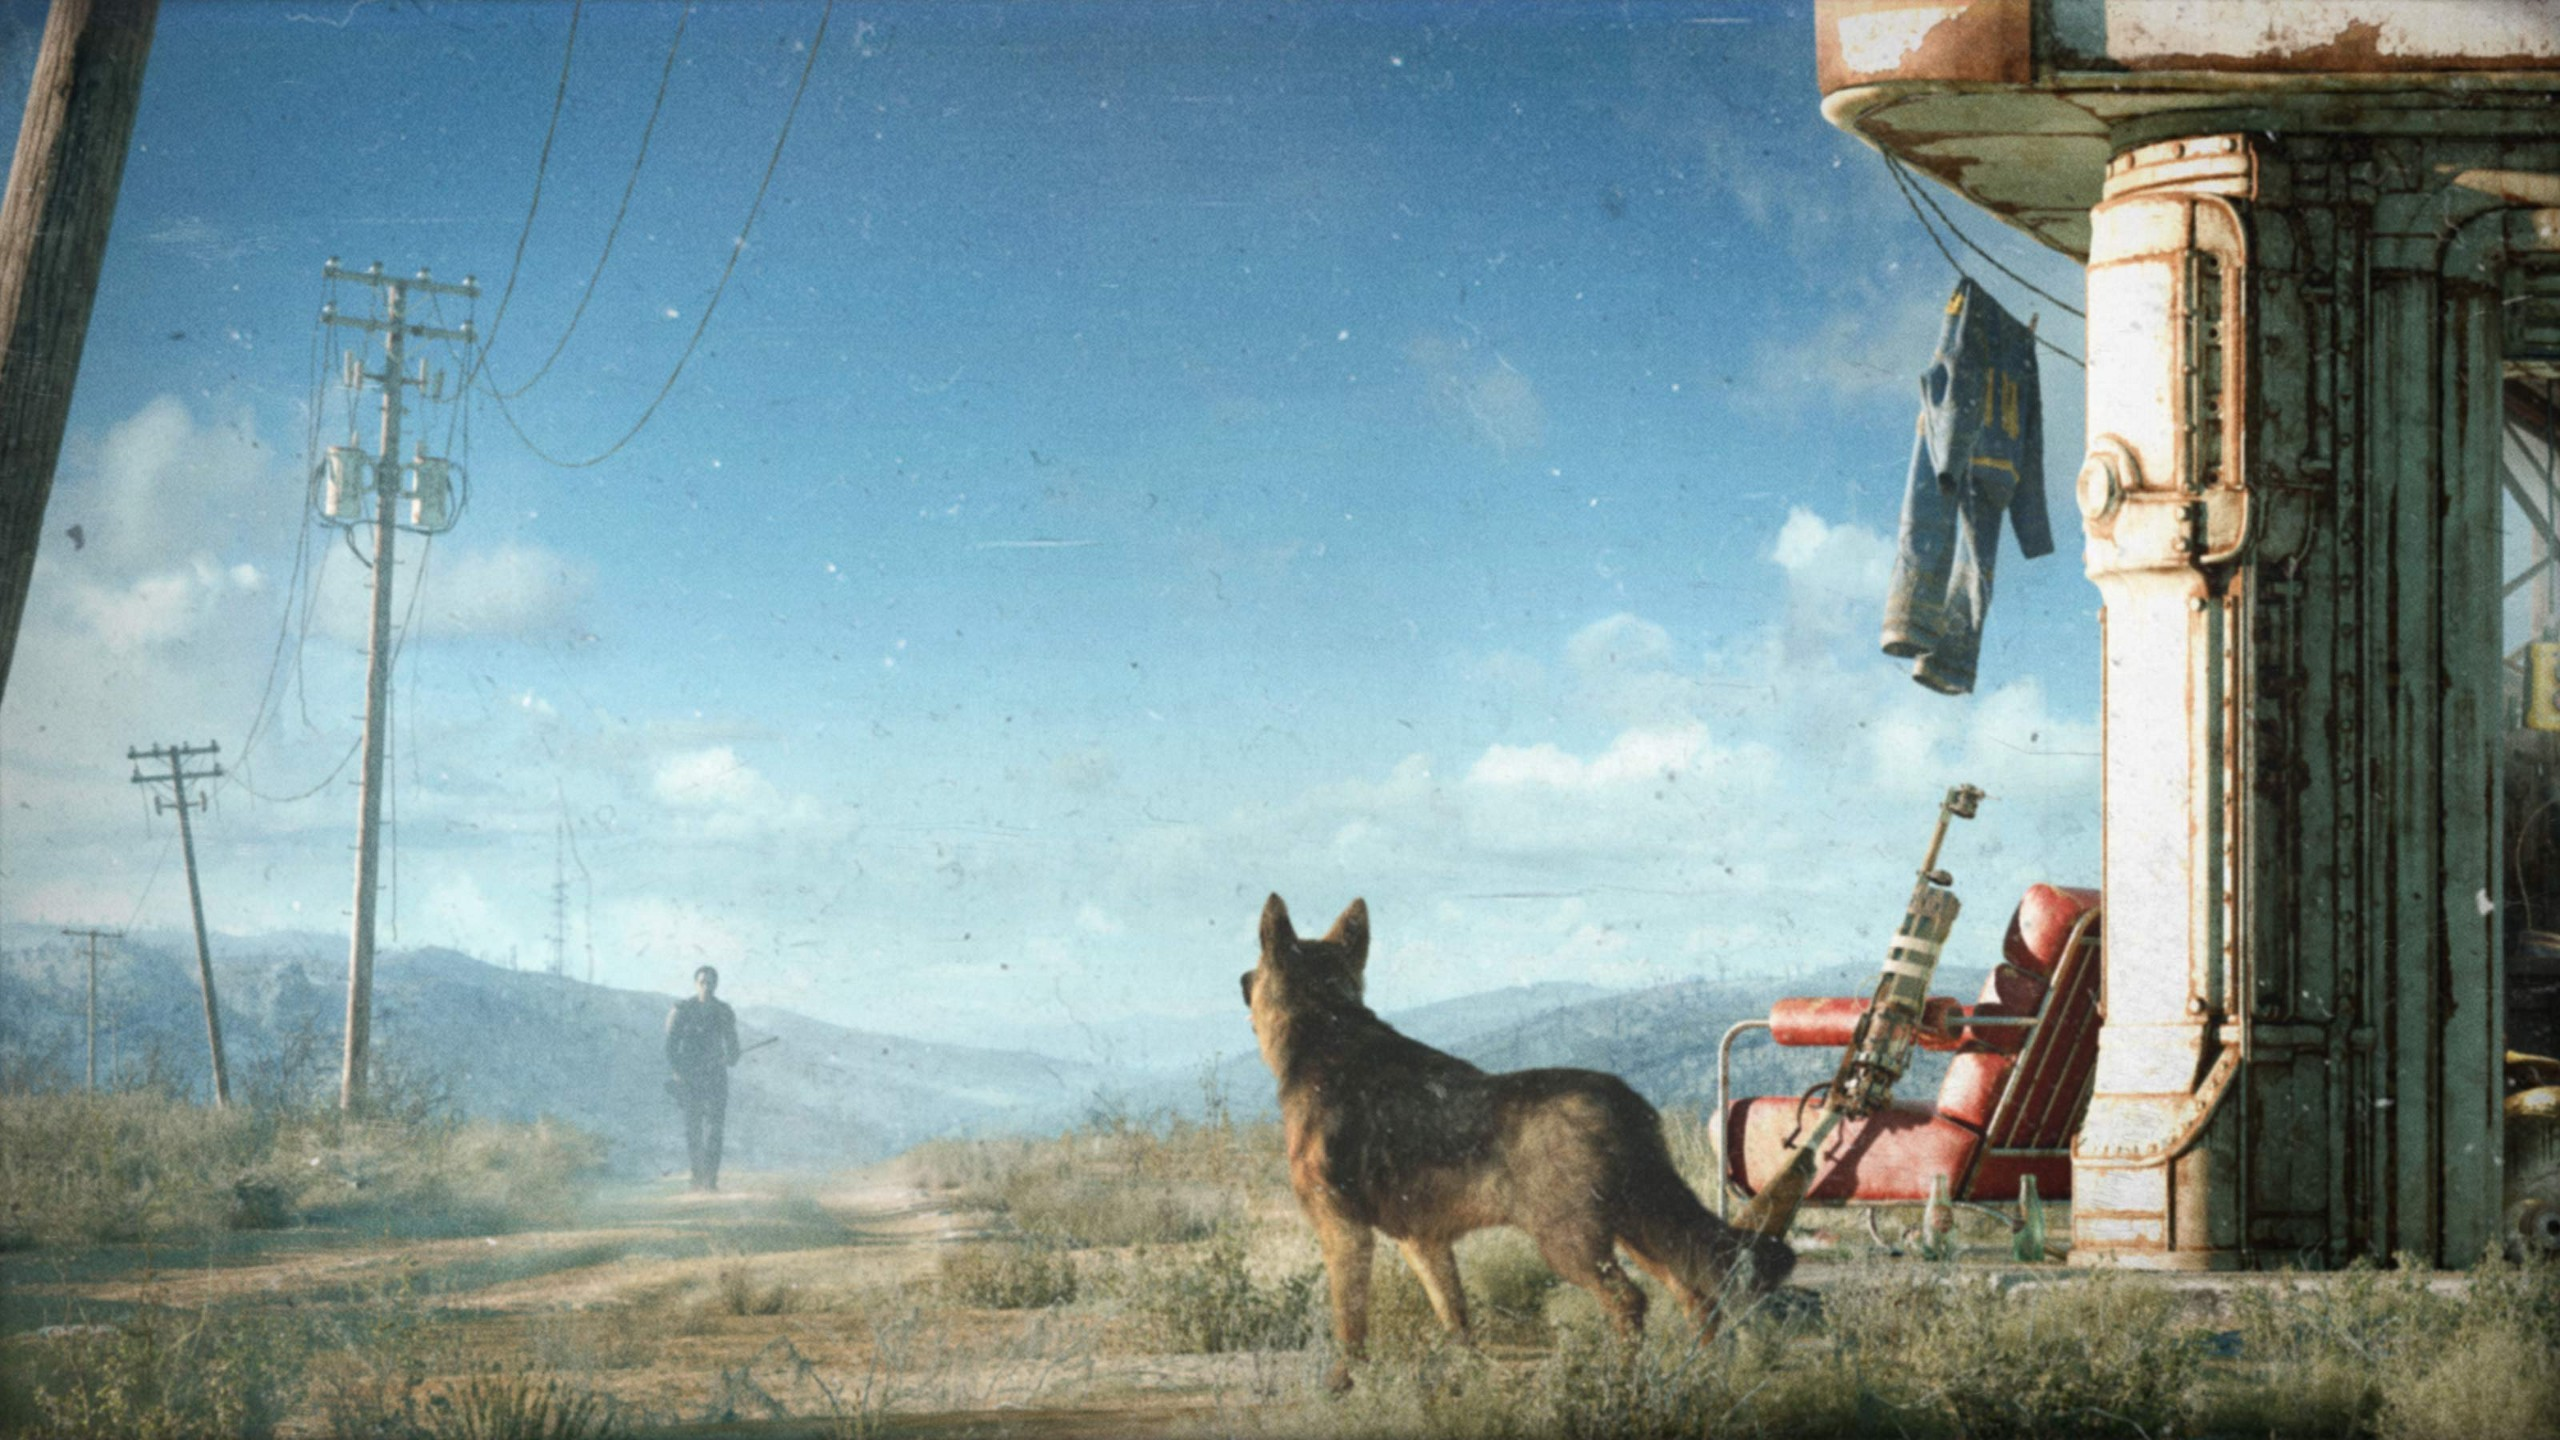 Home > Games HD Wallpapers > Fallout, Video Games, Fallout 4, Dogmeat